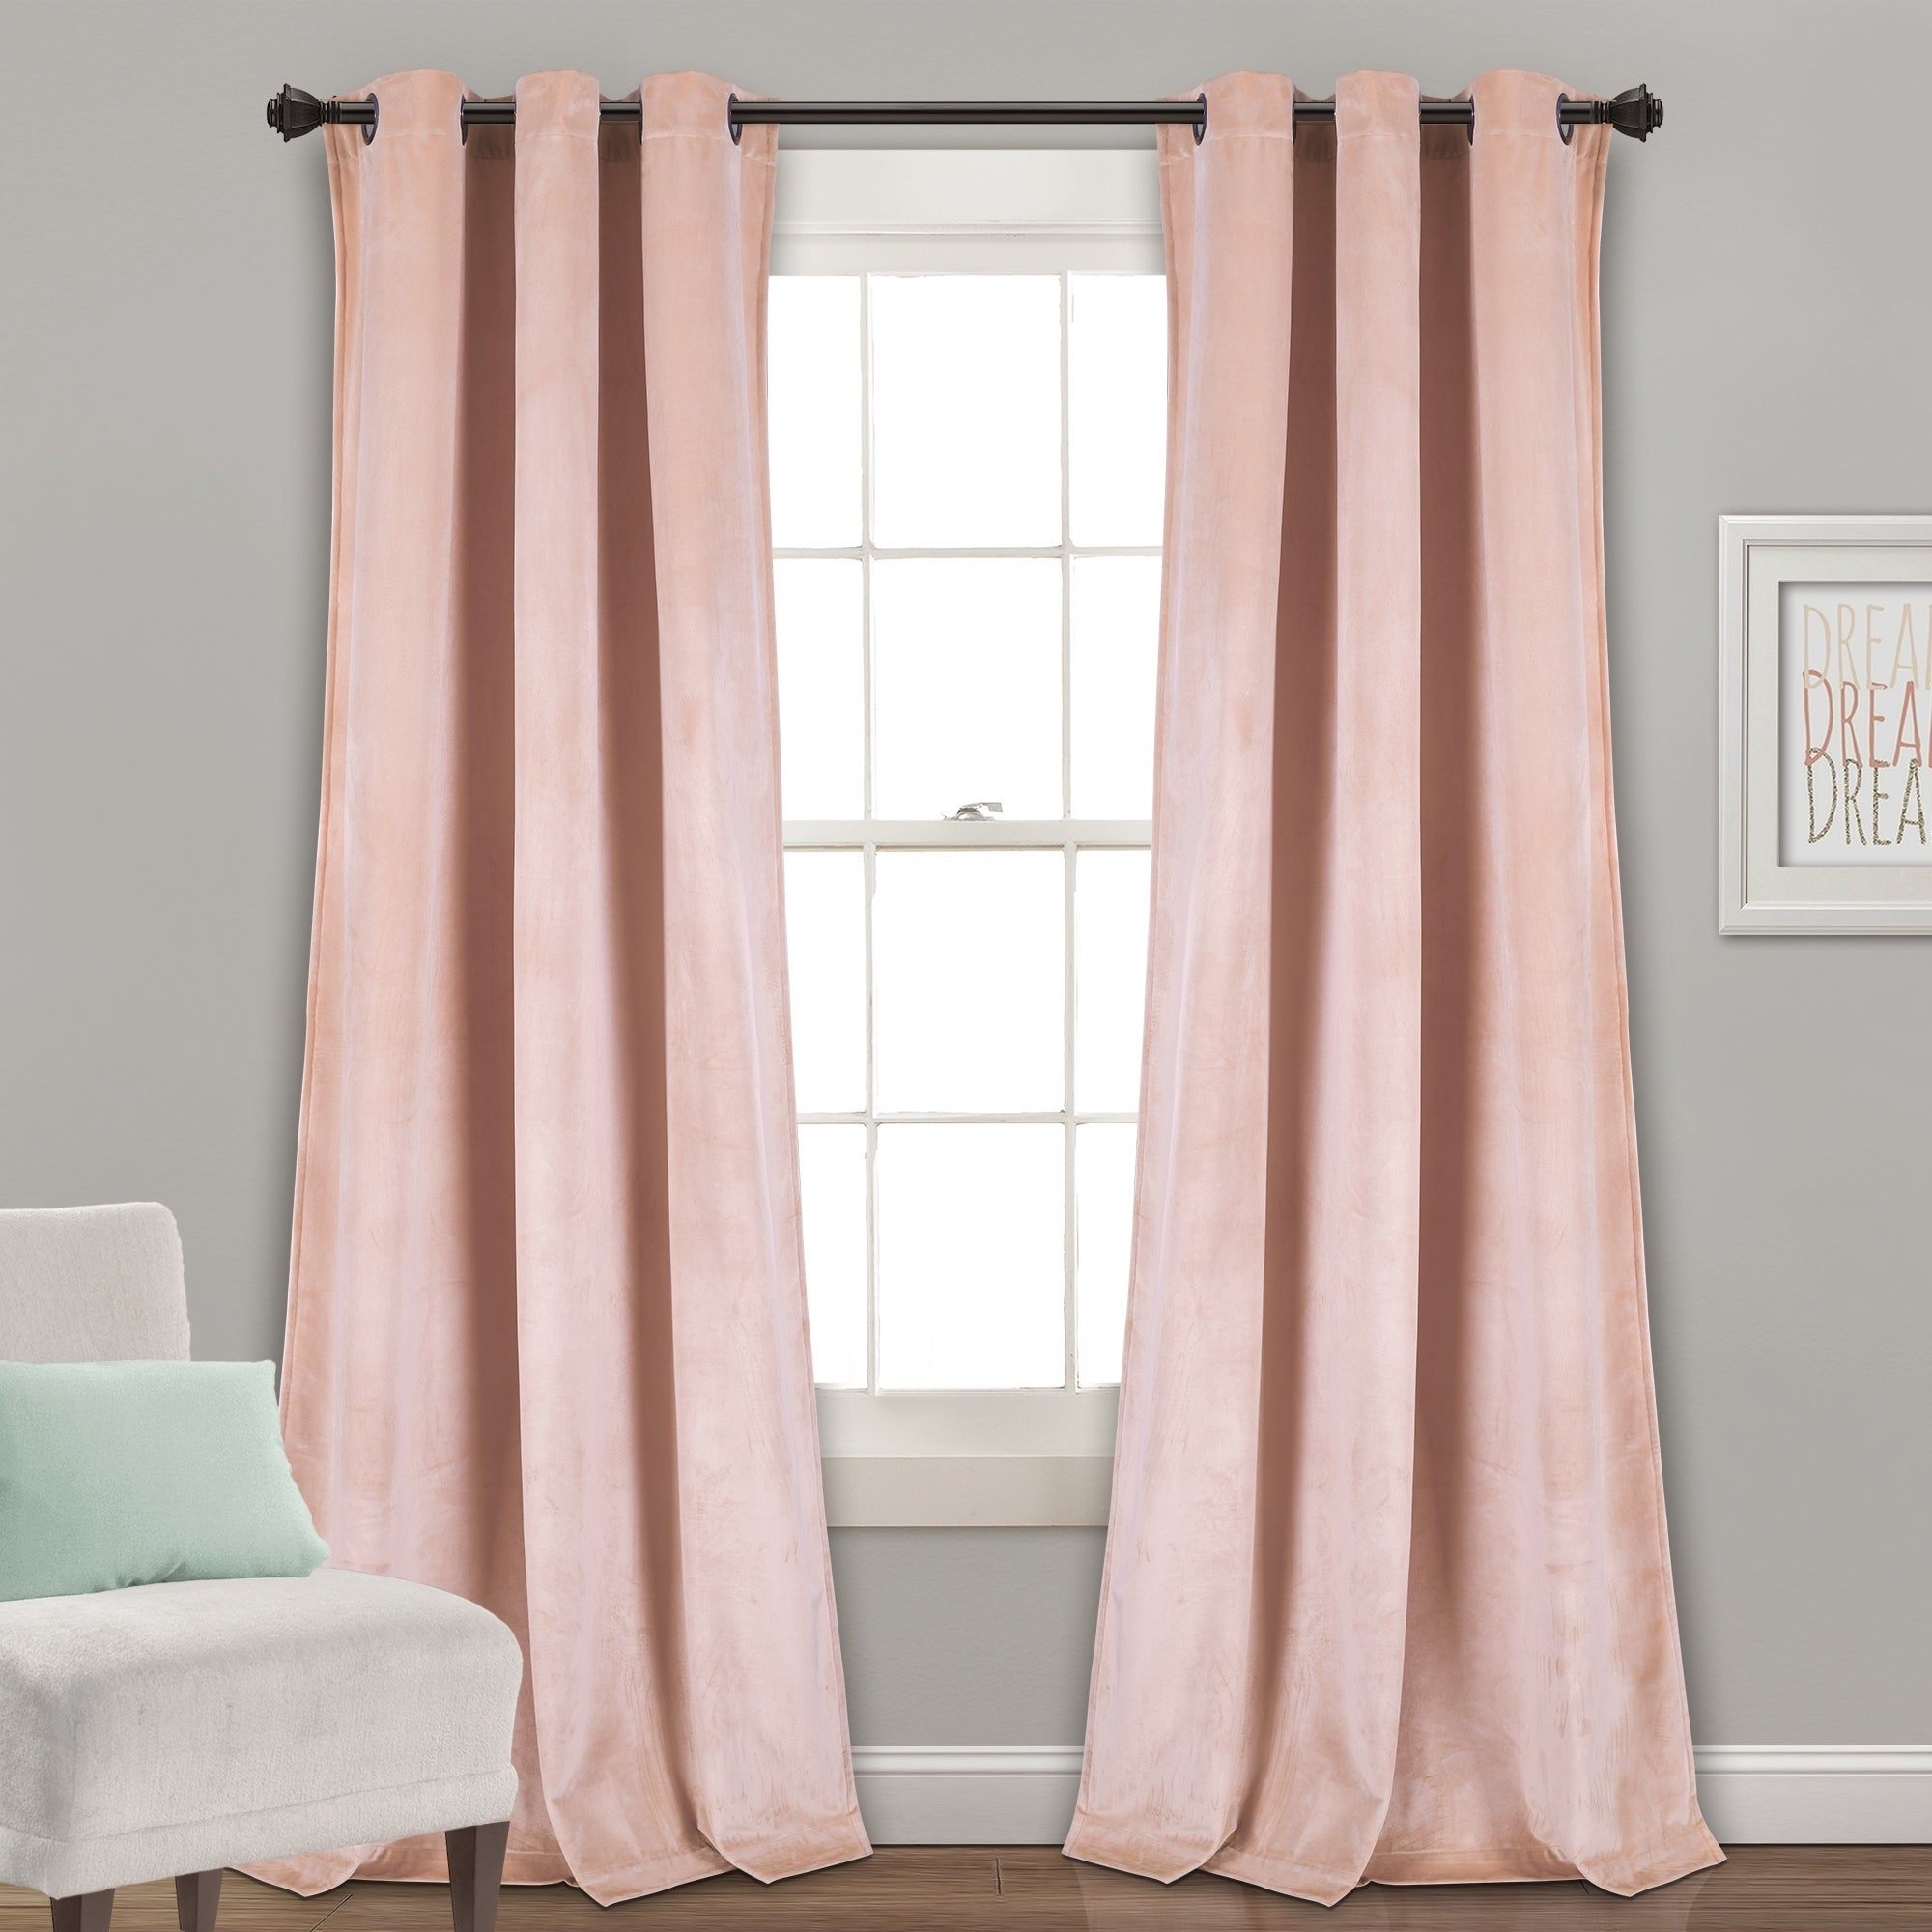 Shop Porch & Den Lapeyrous Velvet Solid Room Darkening With Velvet Solid Room Darkening Window Curtain Panel Sets (View 6 of 30)